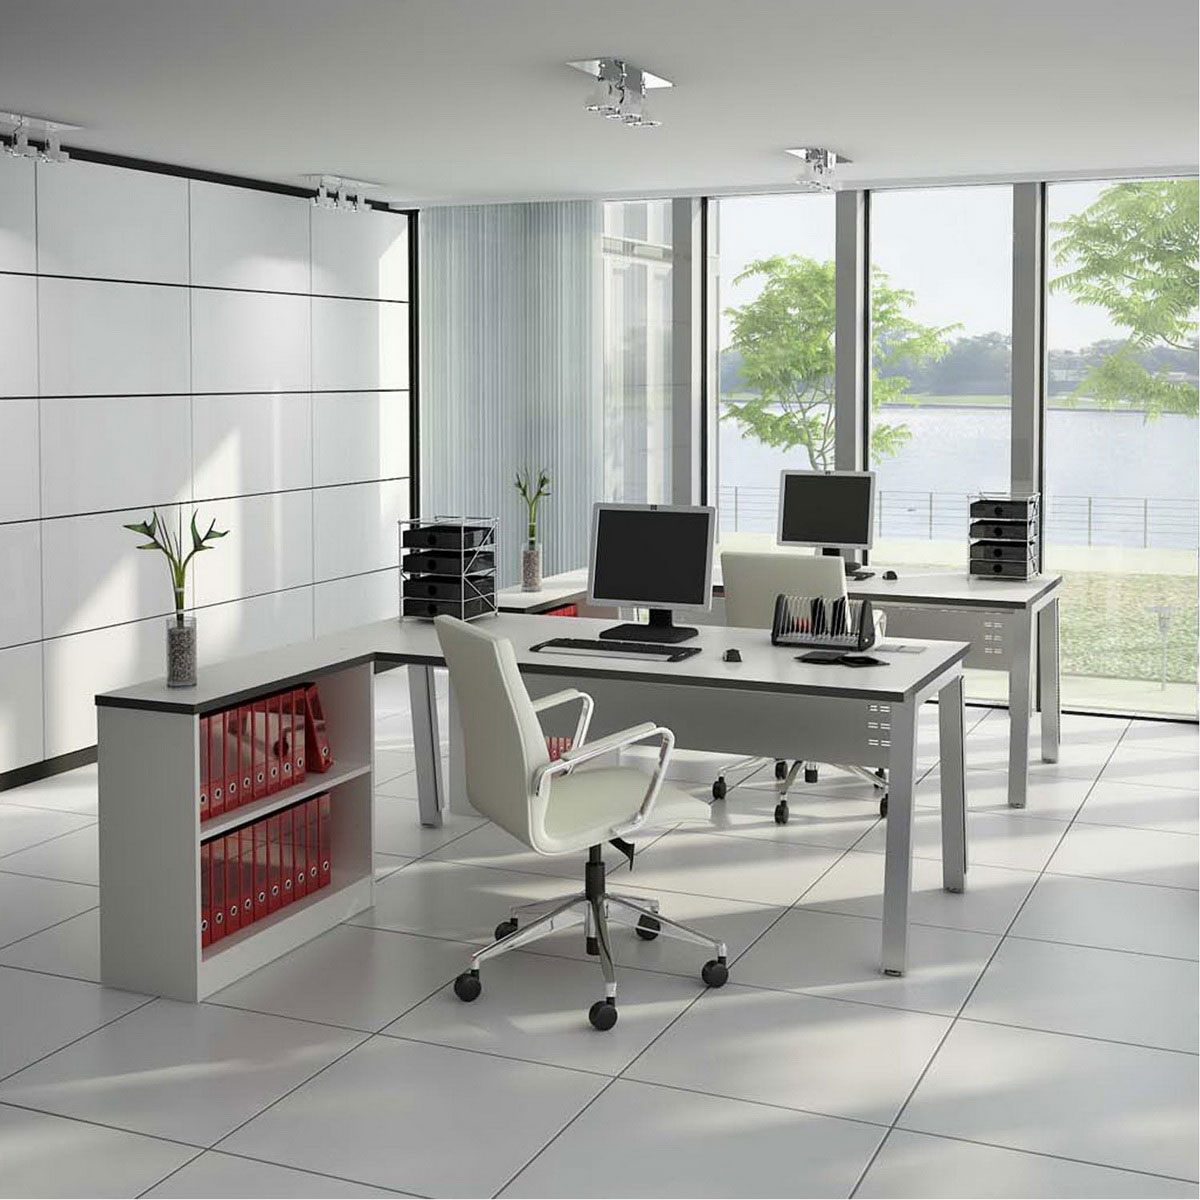 Office interior design dreams house furniture Home interior furniture